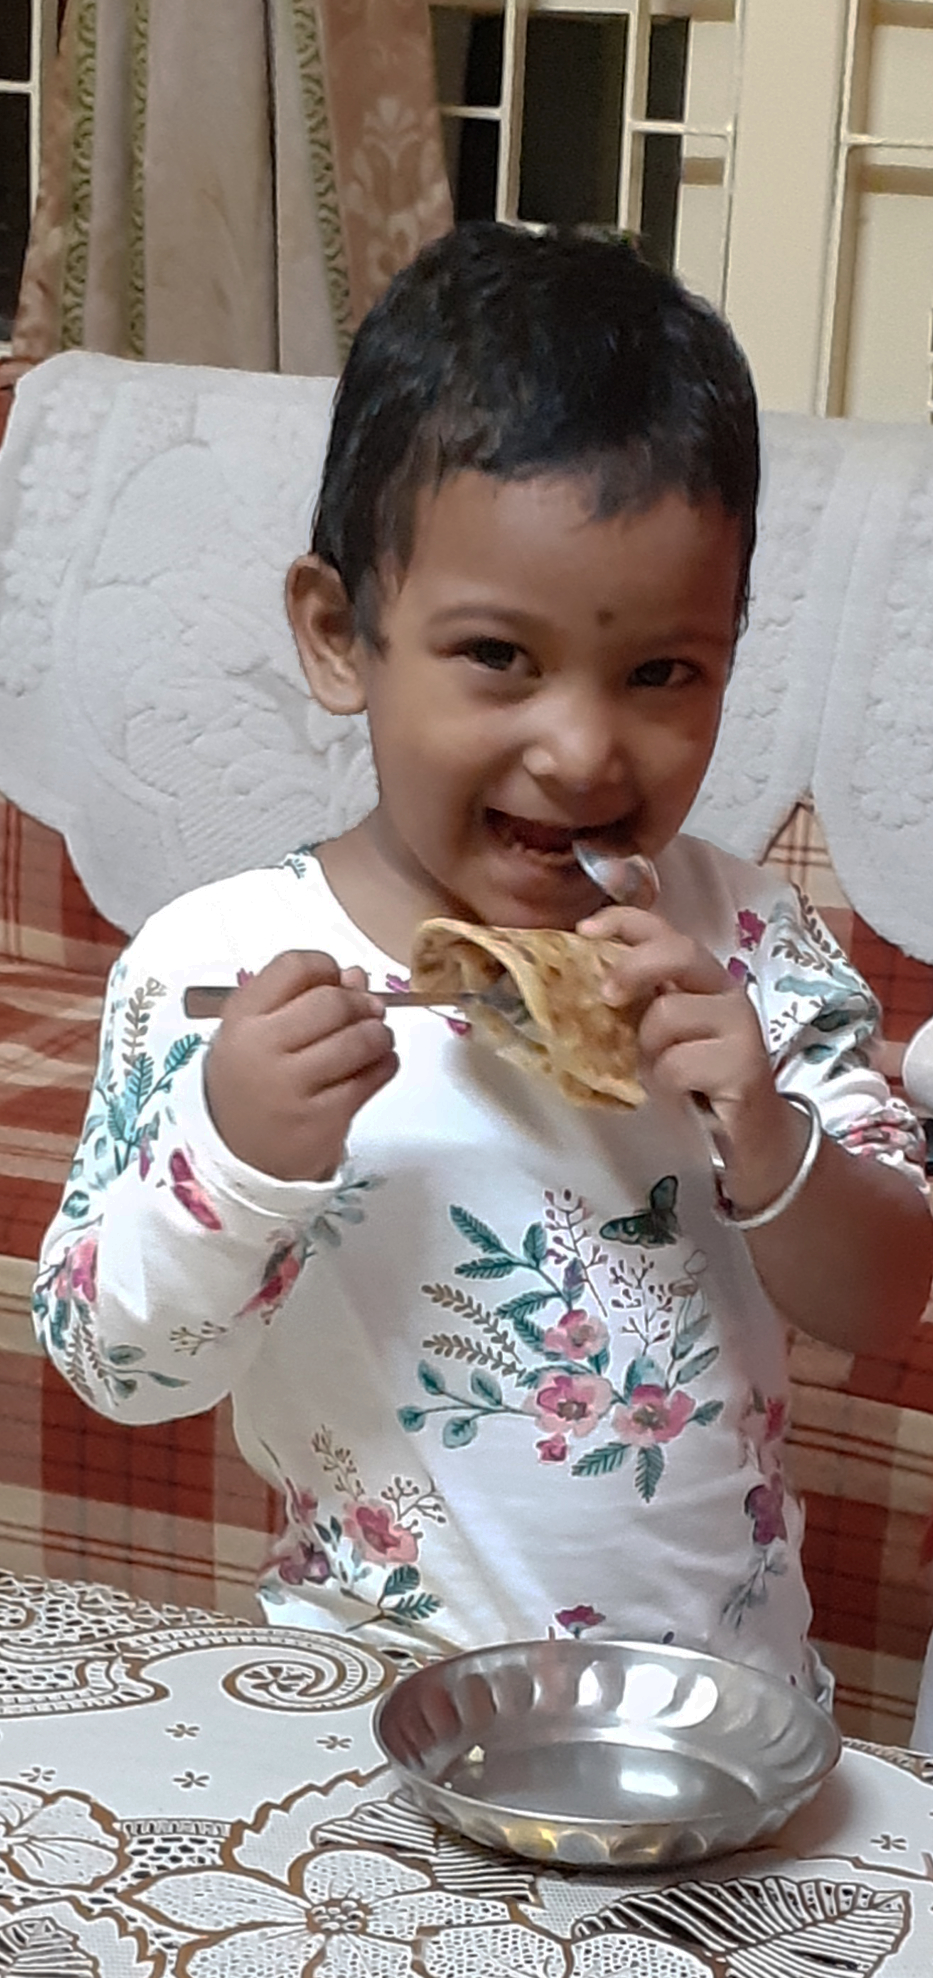 Little baby happy to have a bite into the parantha